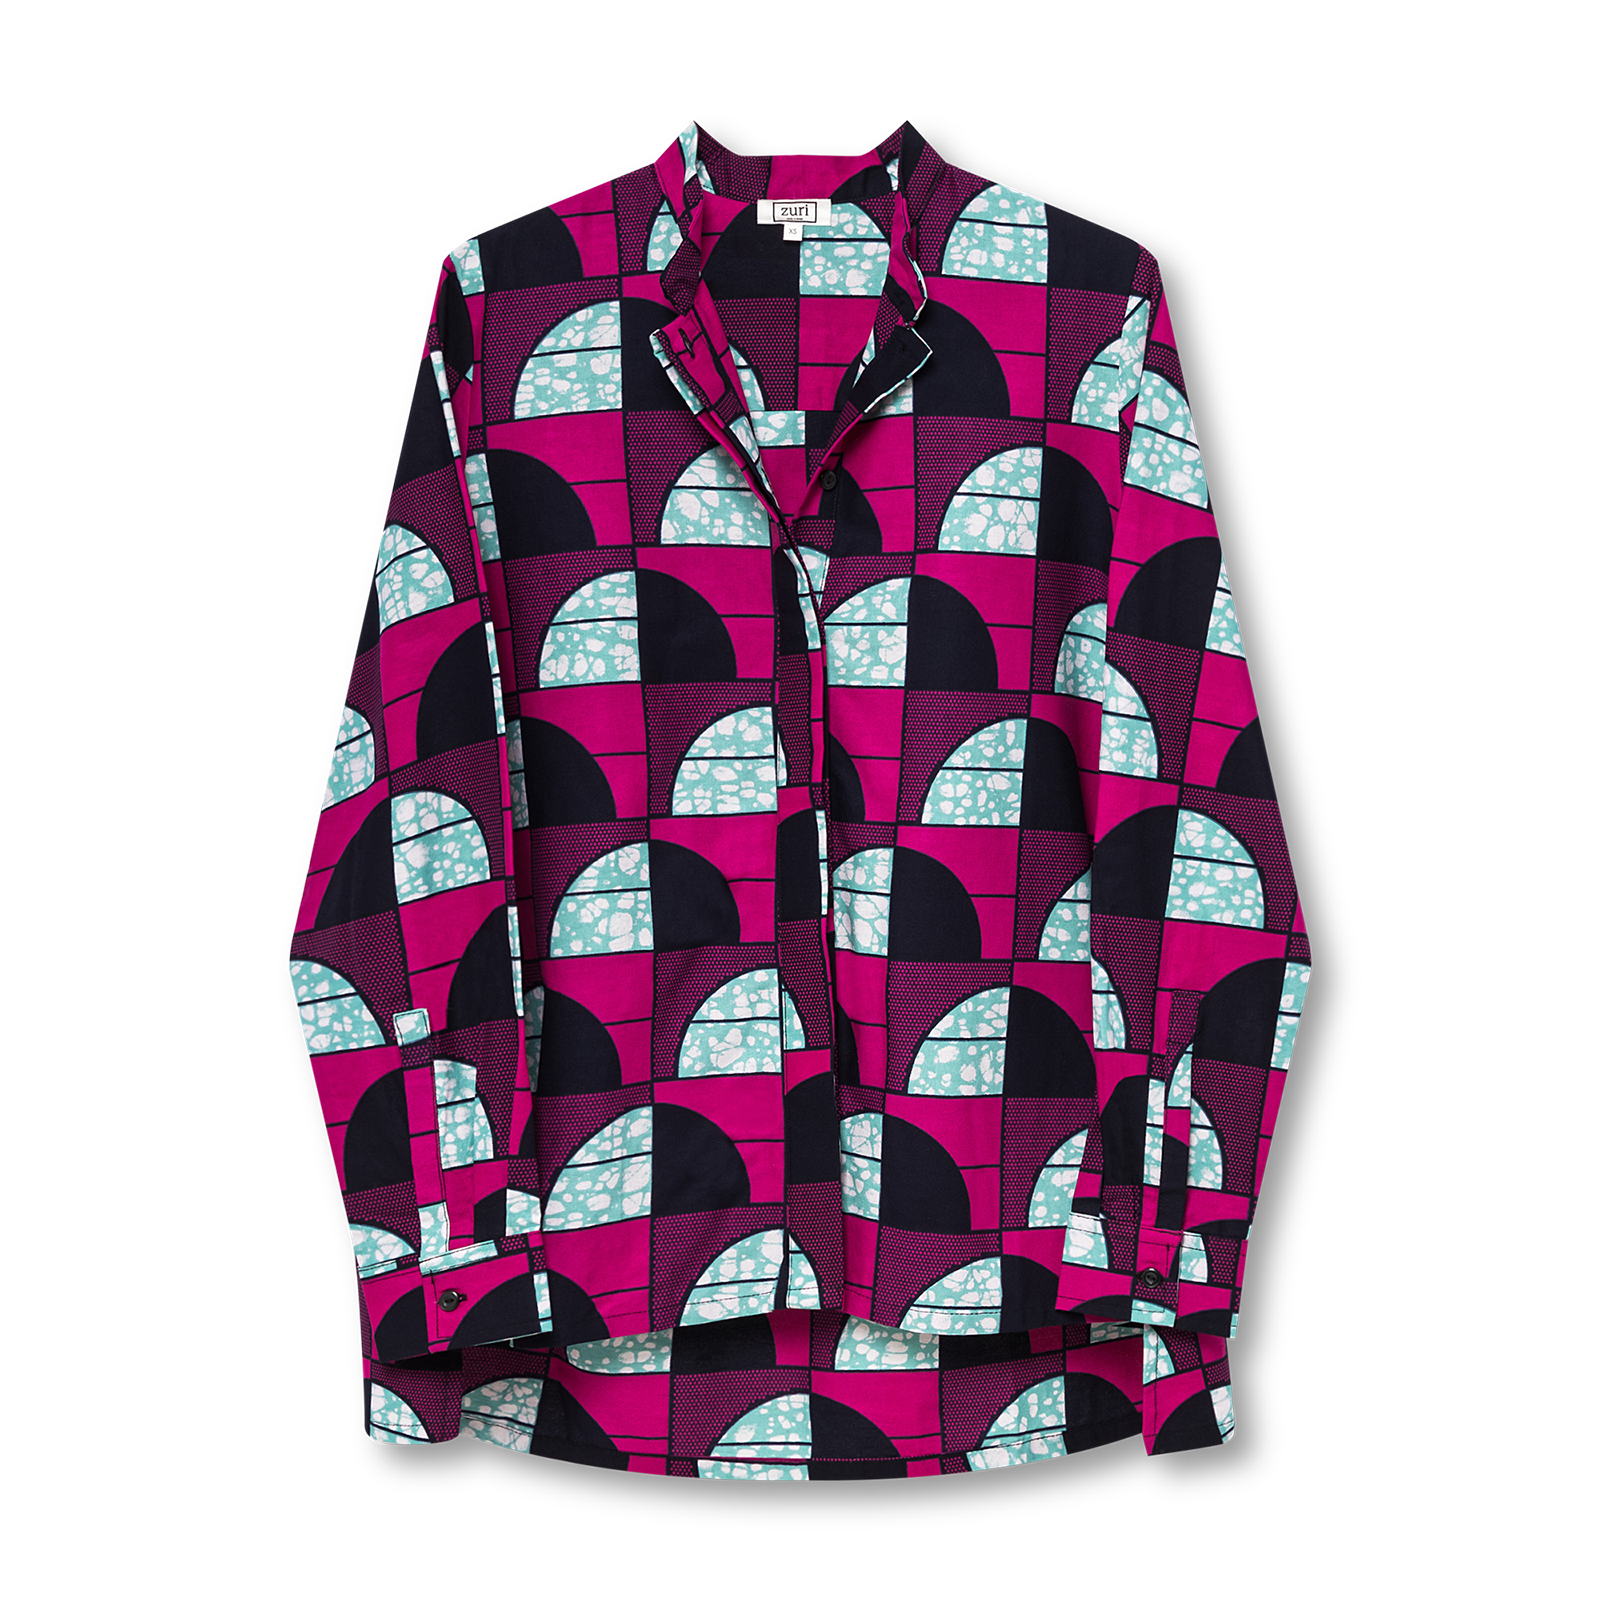 Pinned shirt product photography